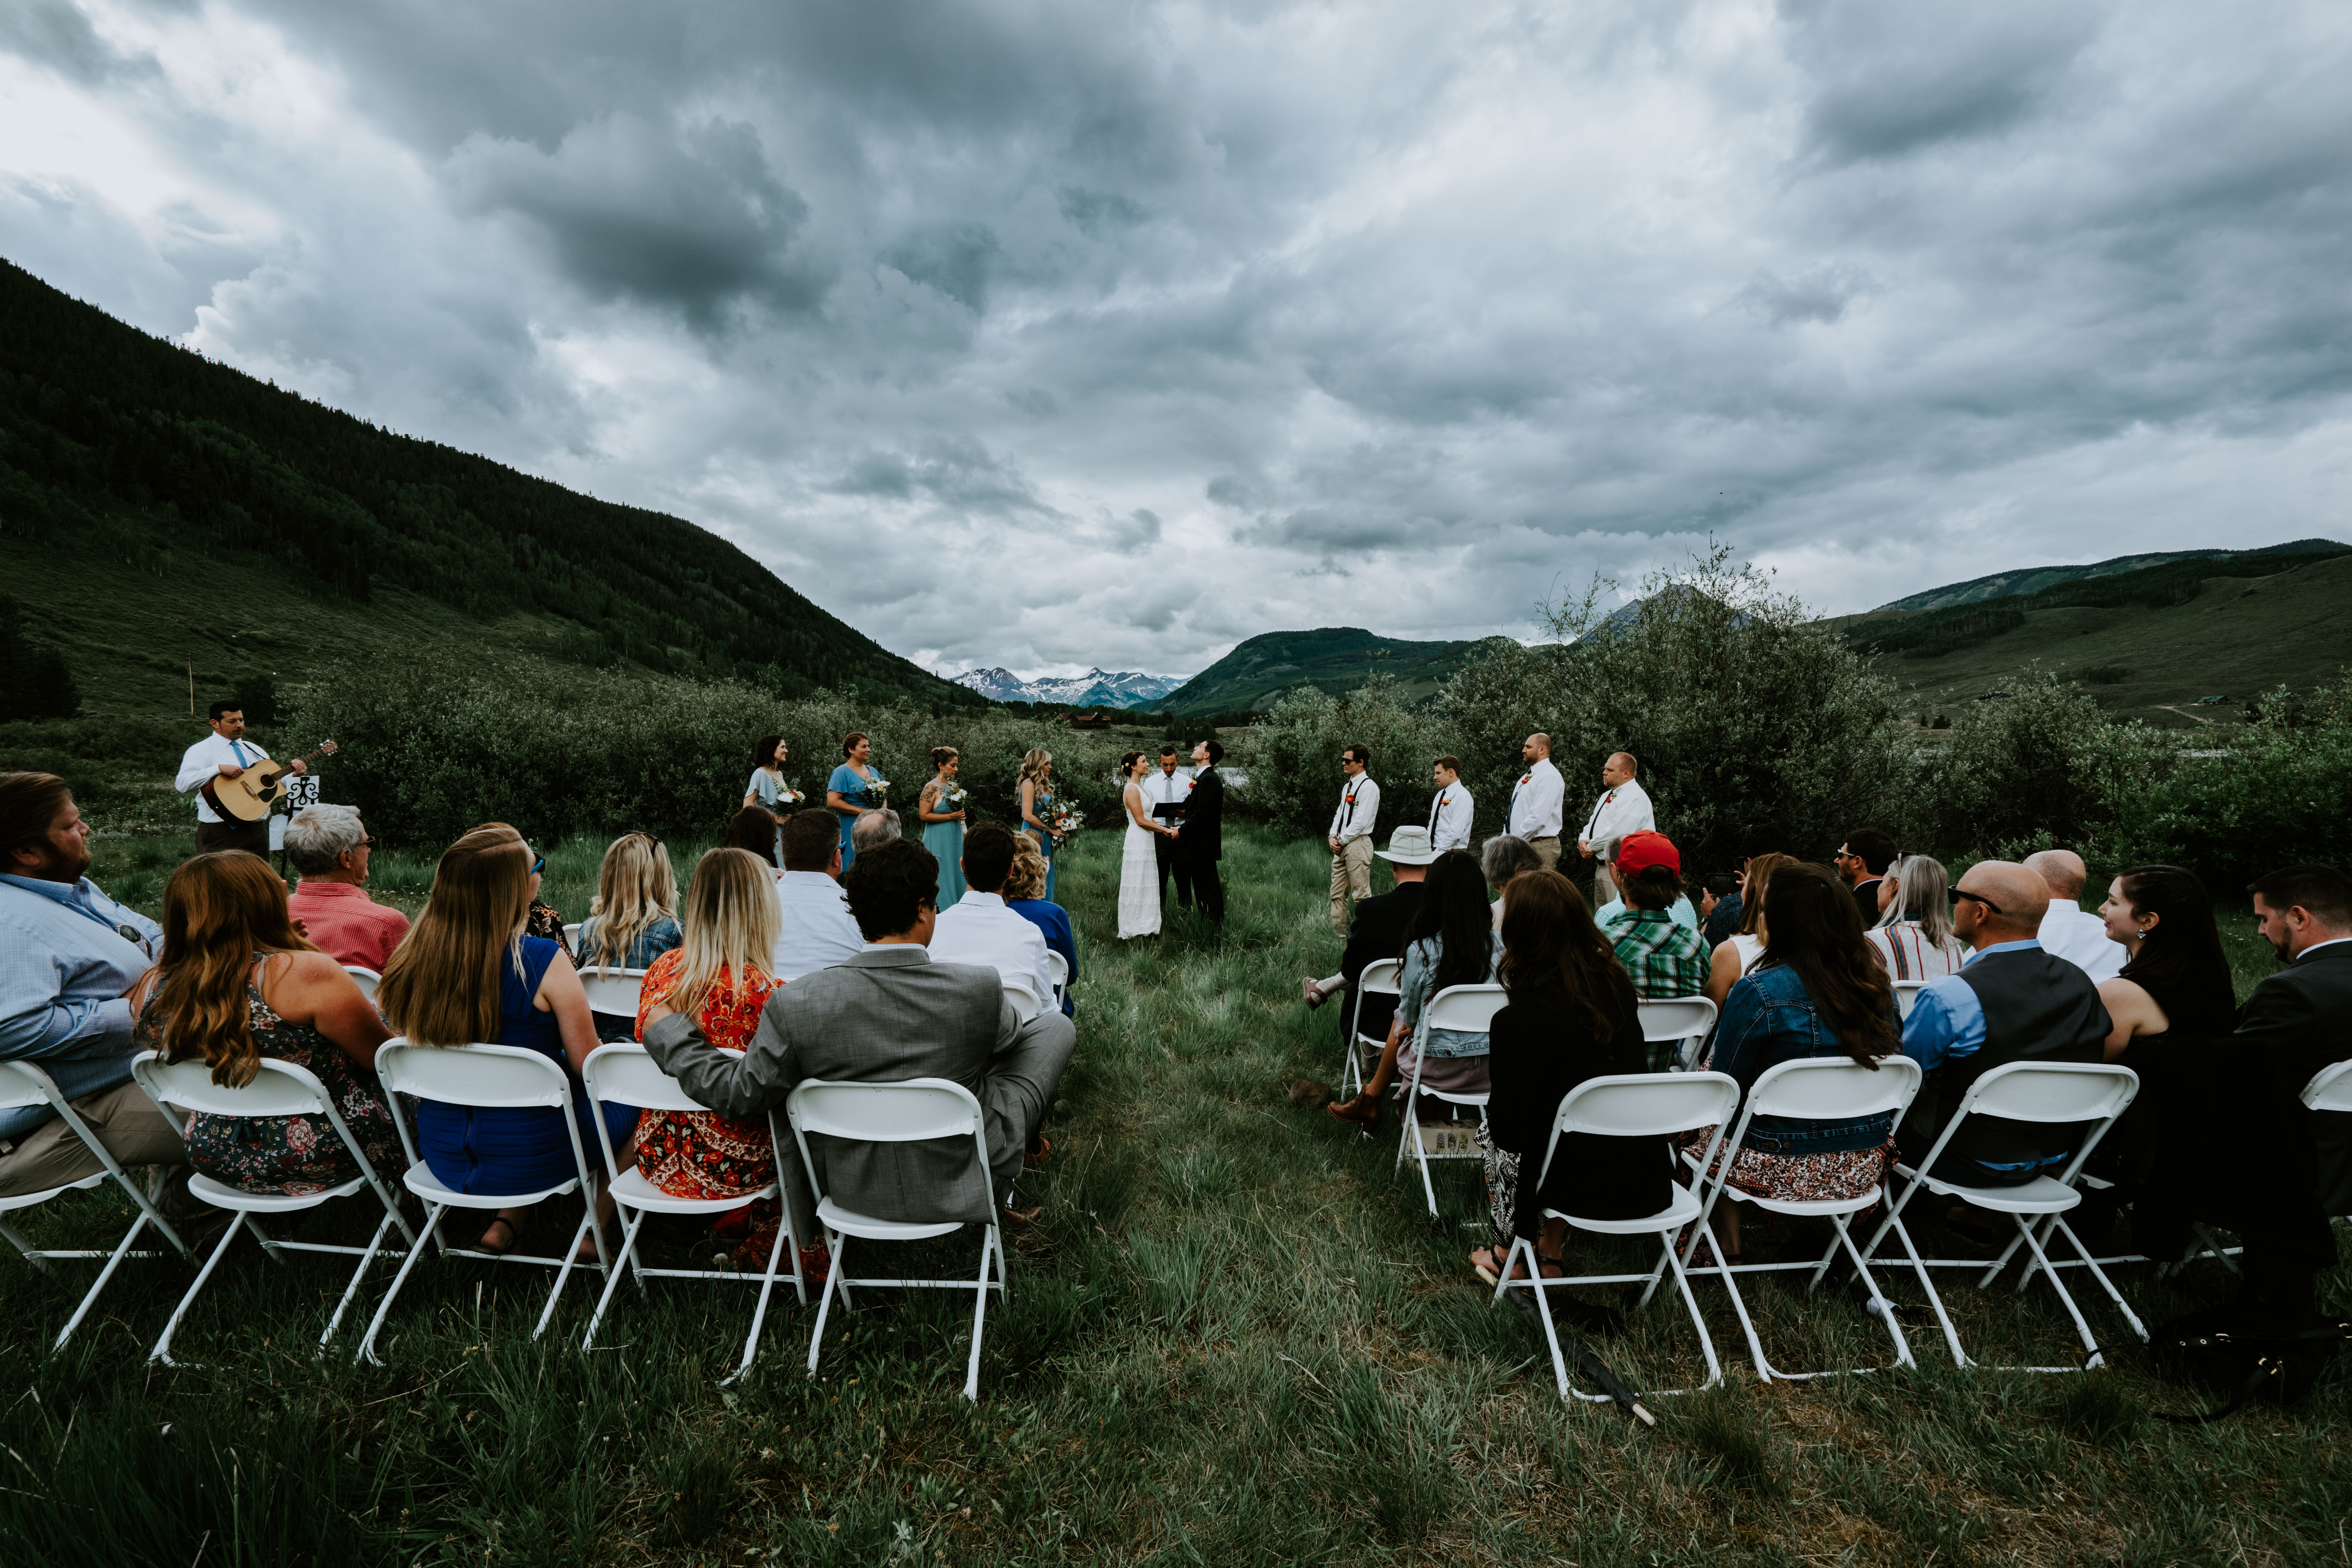 Laura_Alexe_Wedding_Crested_Butte_MegONeillPhotography__180616_103